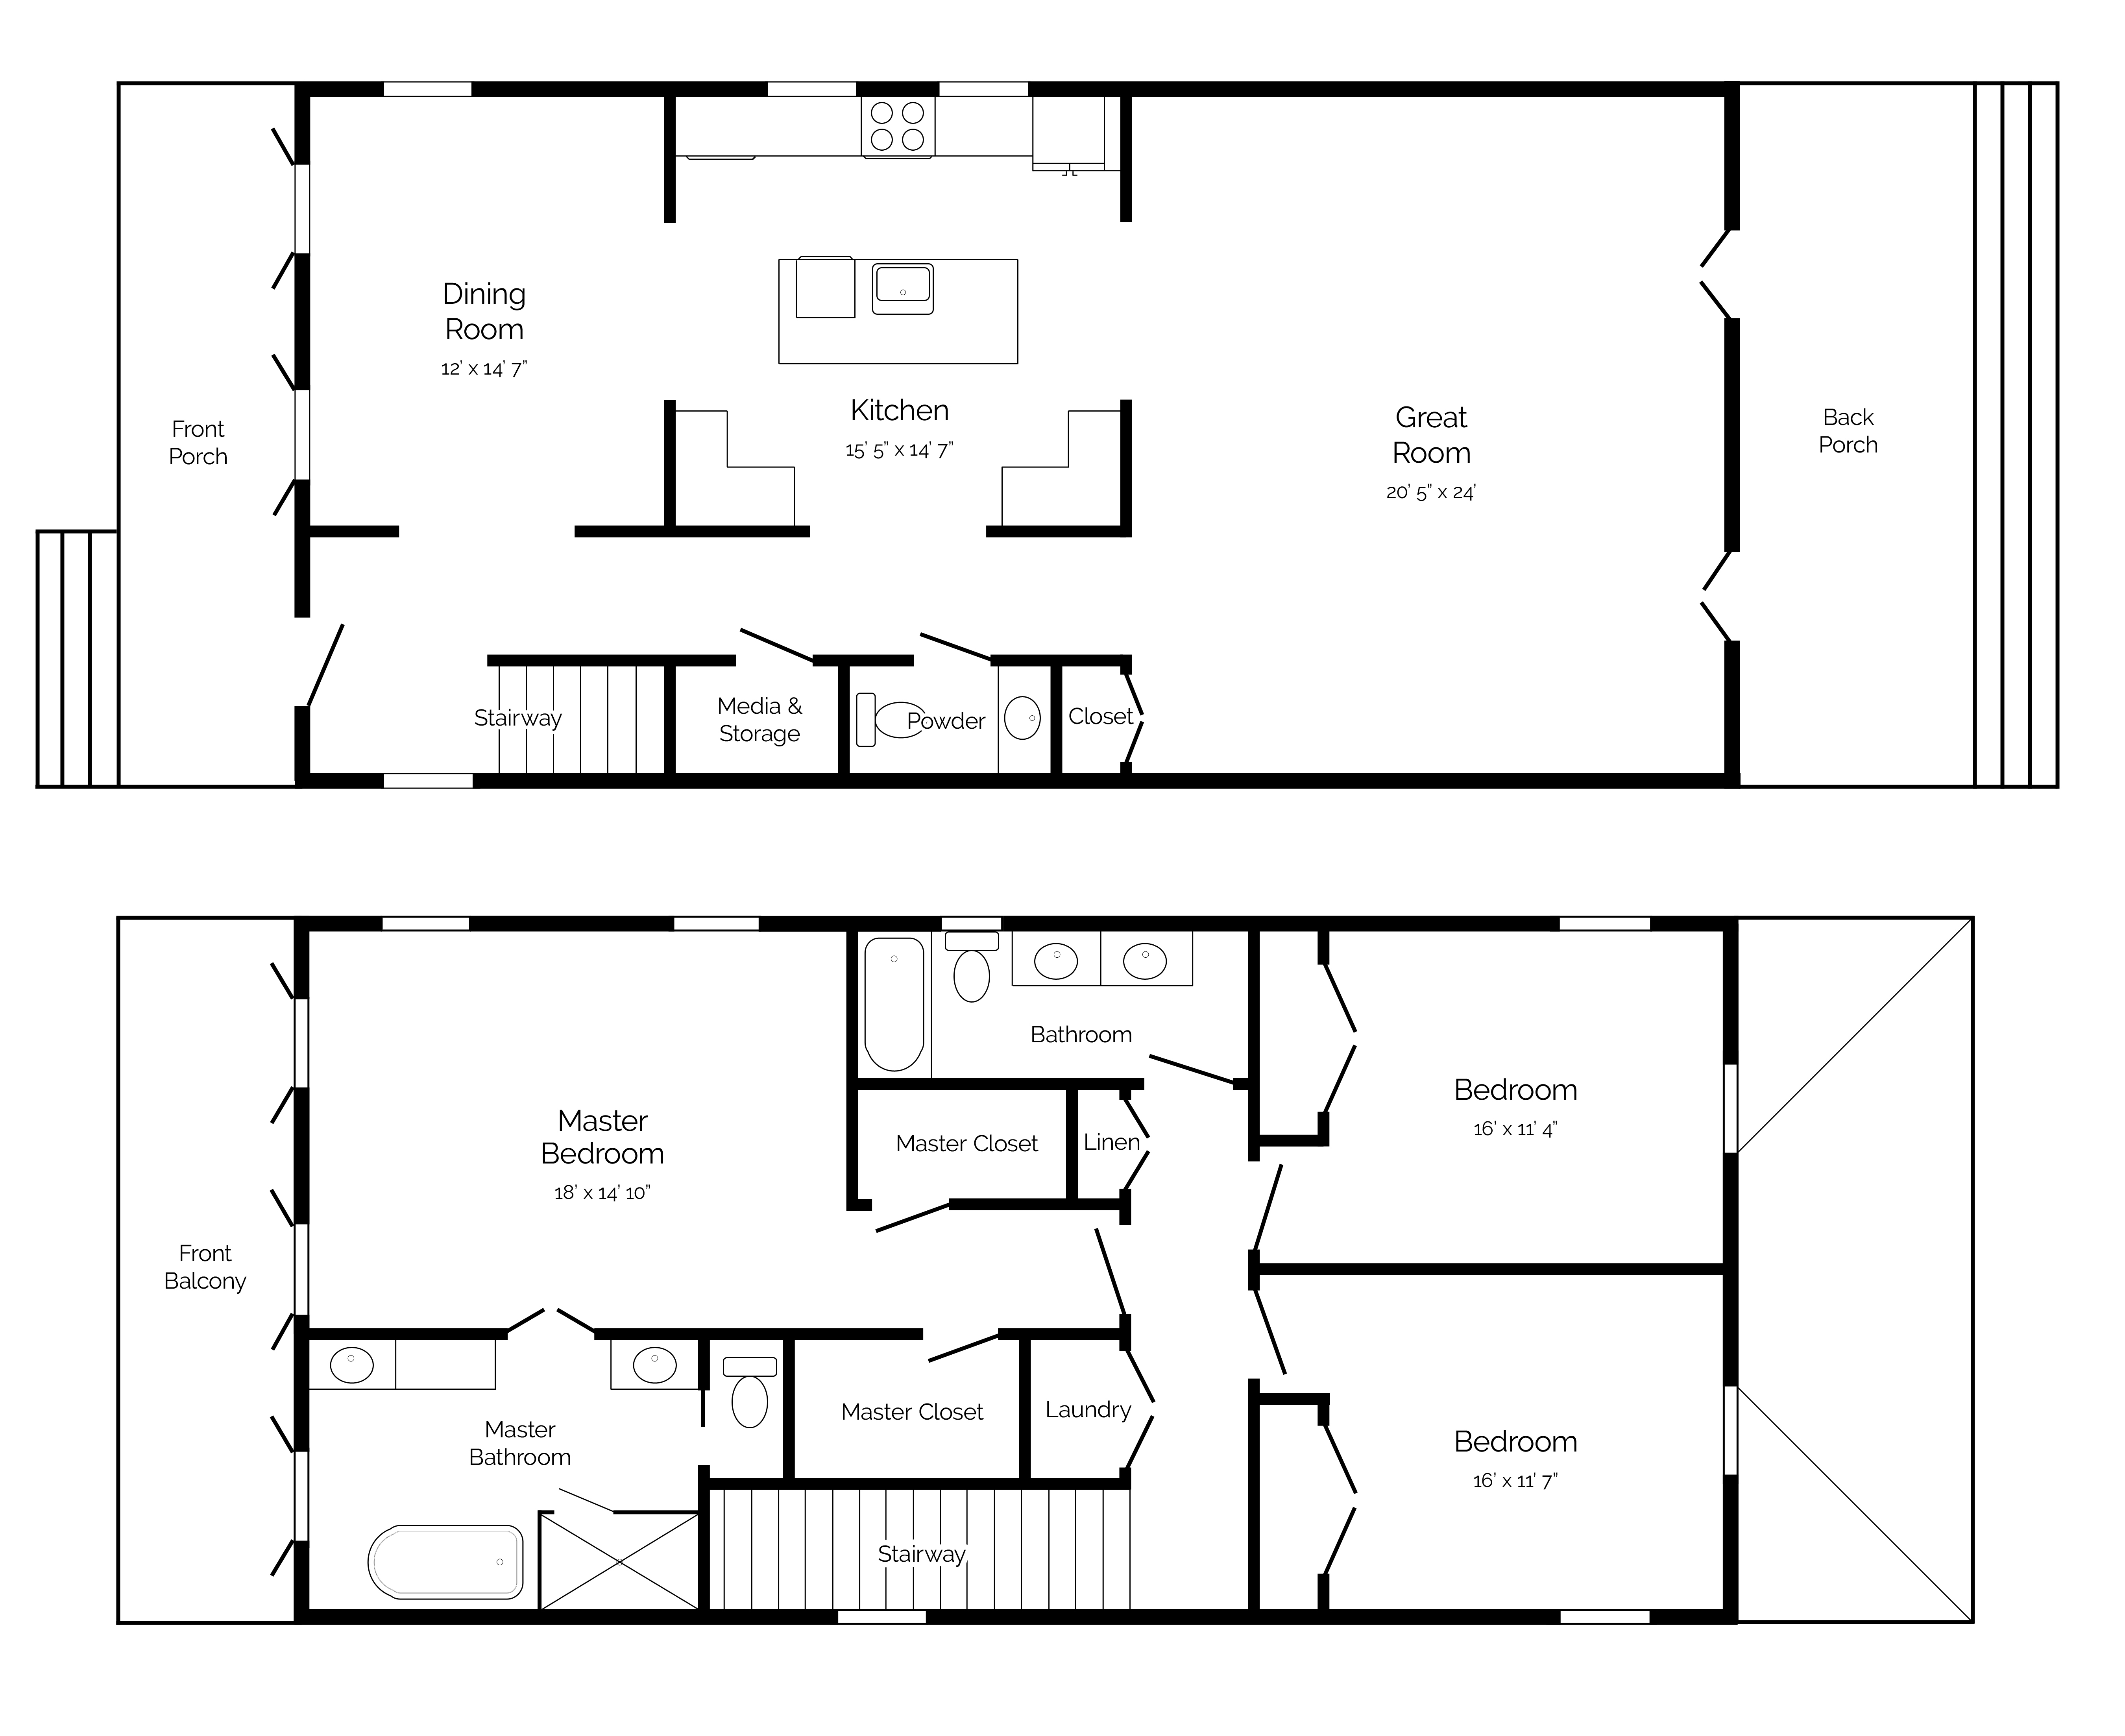 Elegant house plans with carport in back pictures for House plans with carport in back